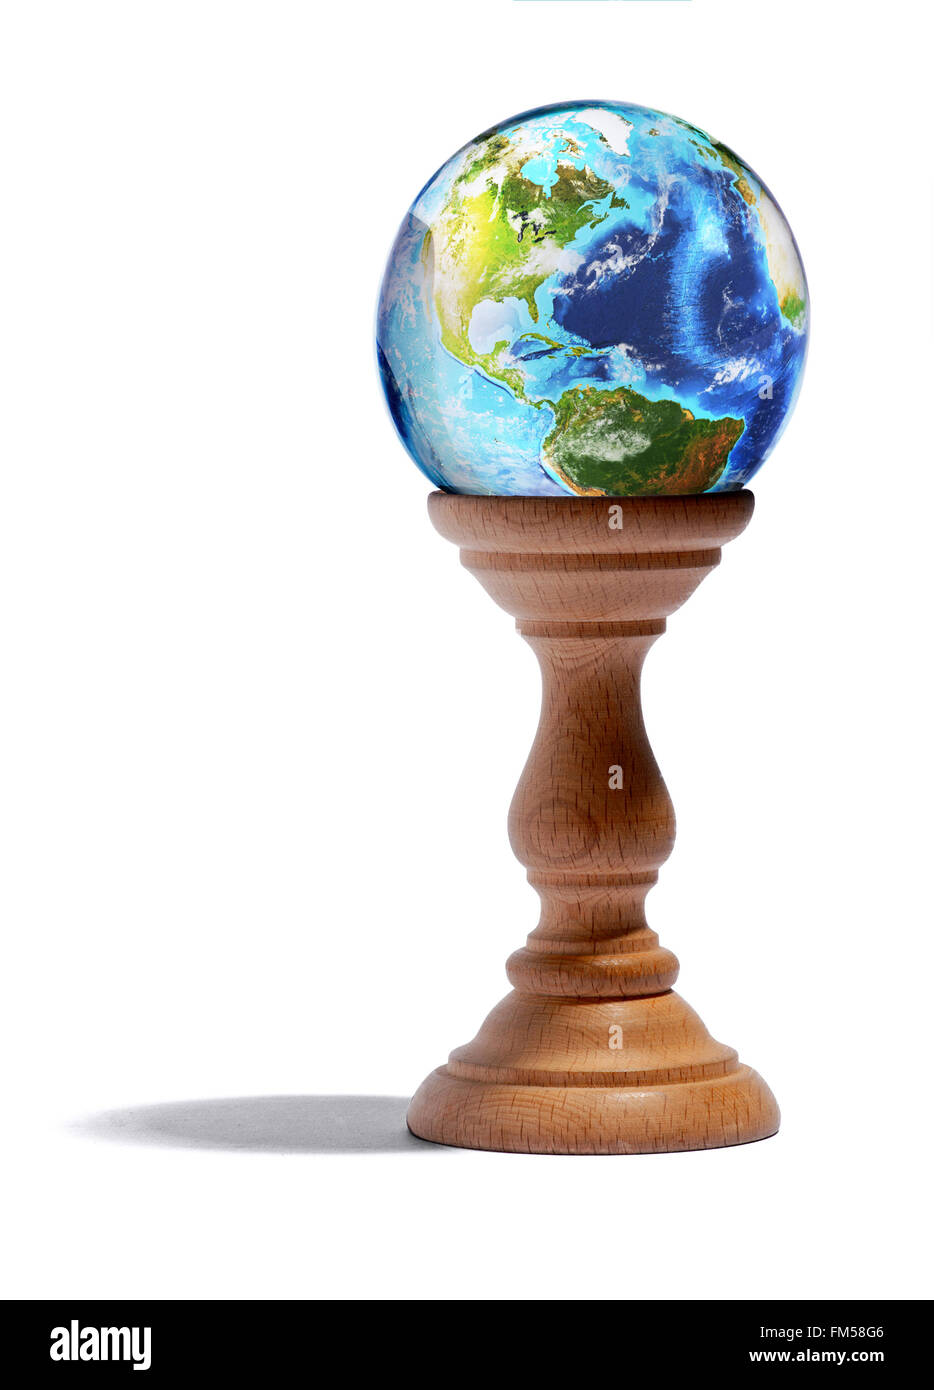 Fortuneteller glass globe showing the continents and oceans of the Earth - Stock Image